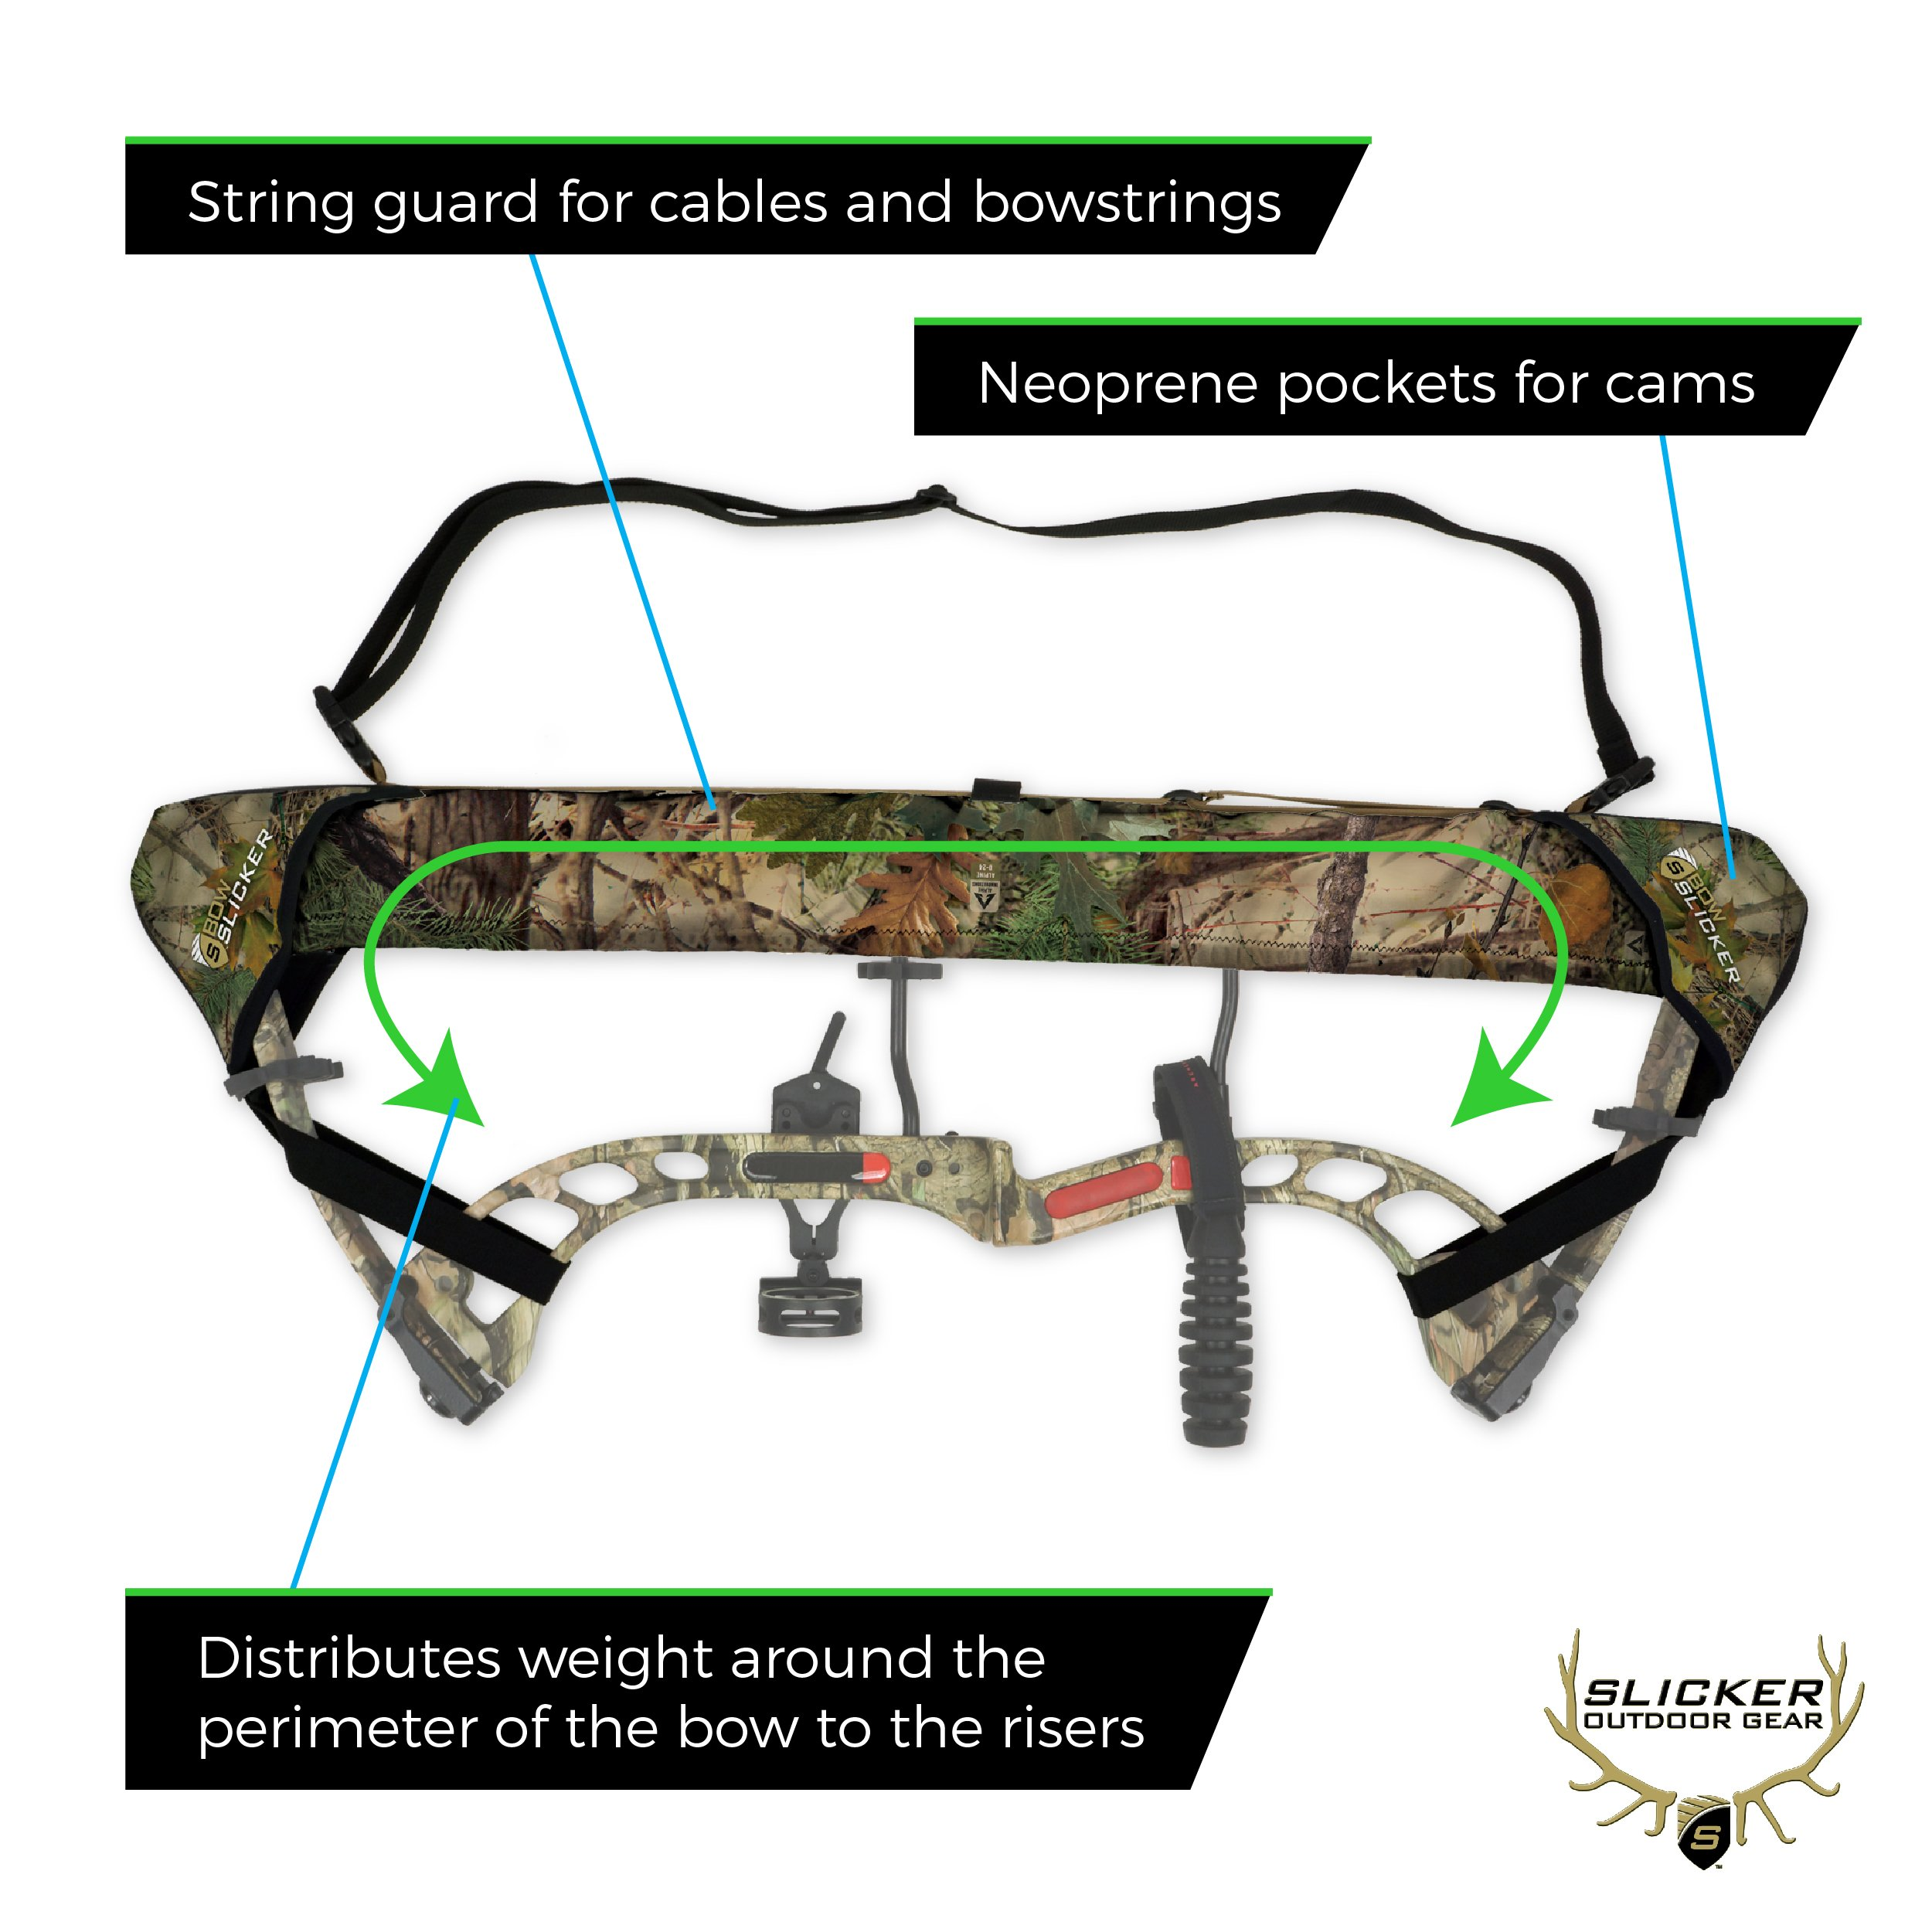 Slicker Weatherproof Bow Sling for Archery, Soft and Compact Bow Case for Hunting Gear Accessories, Cam and String Protector - Bow Dark Earth Tan (G54)